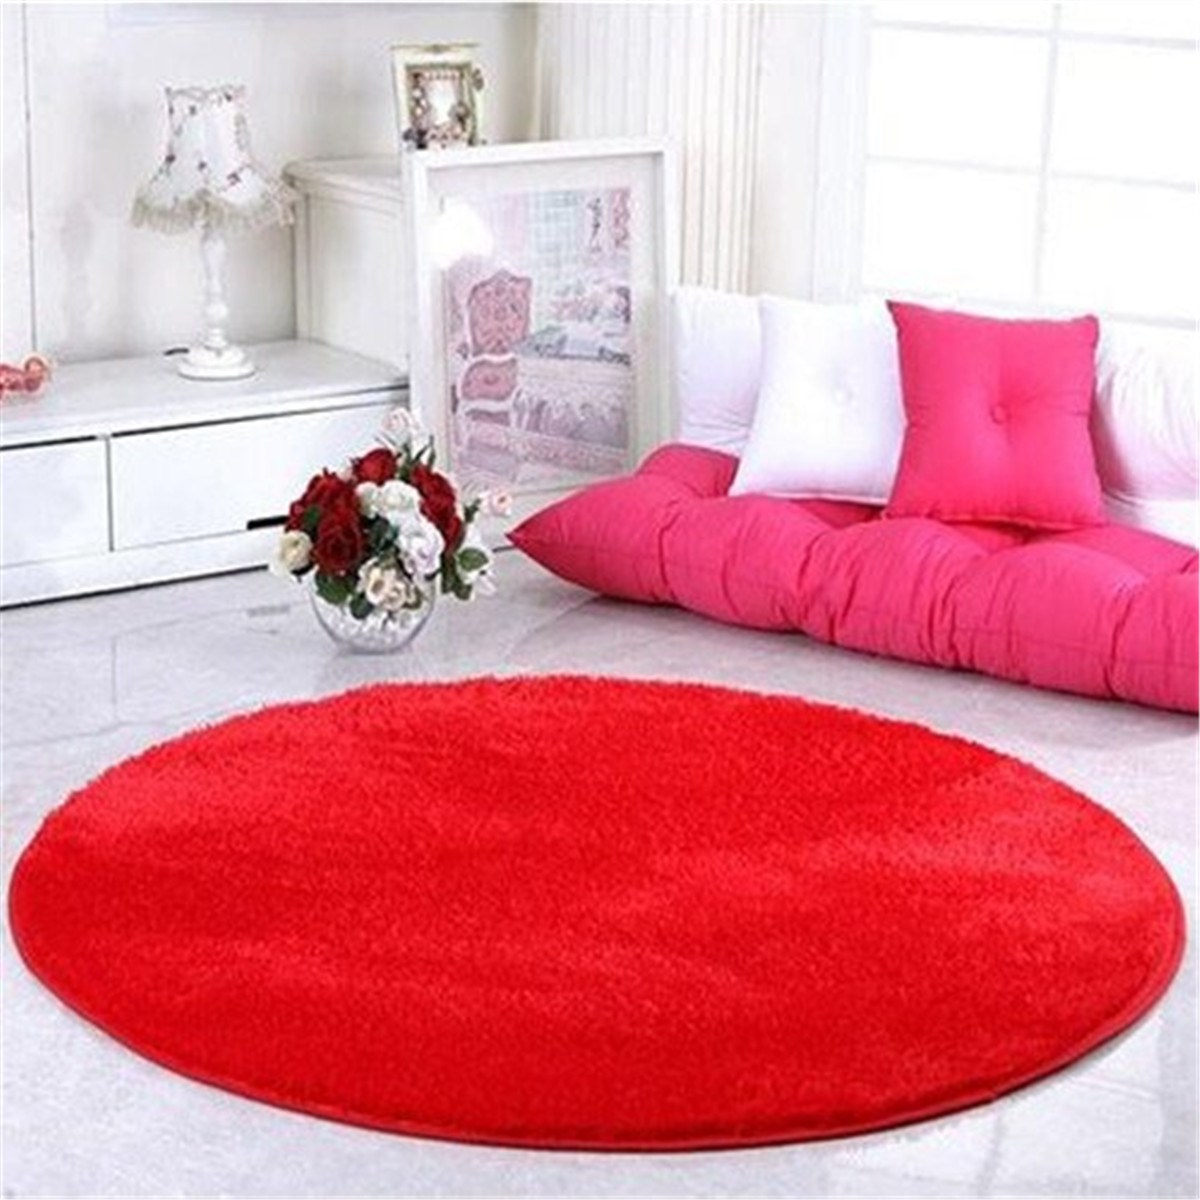 Modern Shaggy Round Rugs Carpets Fashion Red Floor Mats Long Hair Faux Fur Living Room Bedroom